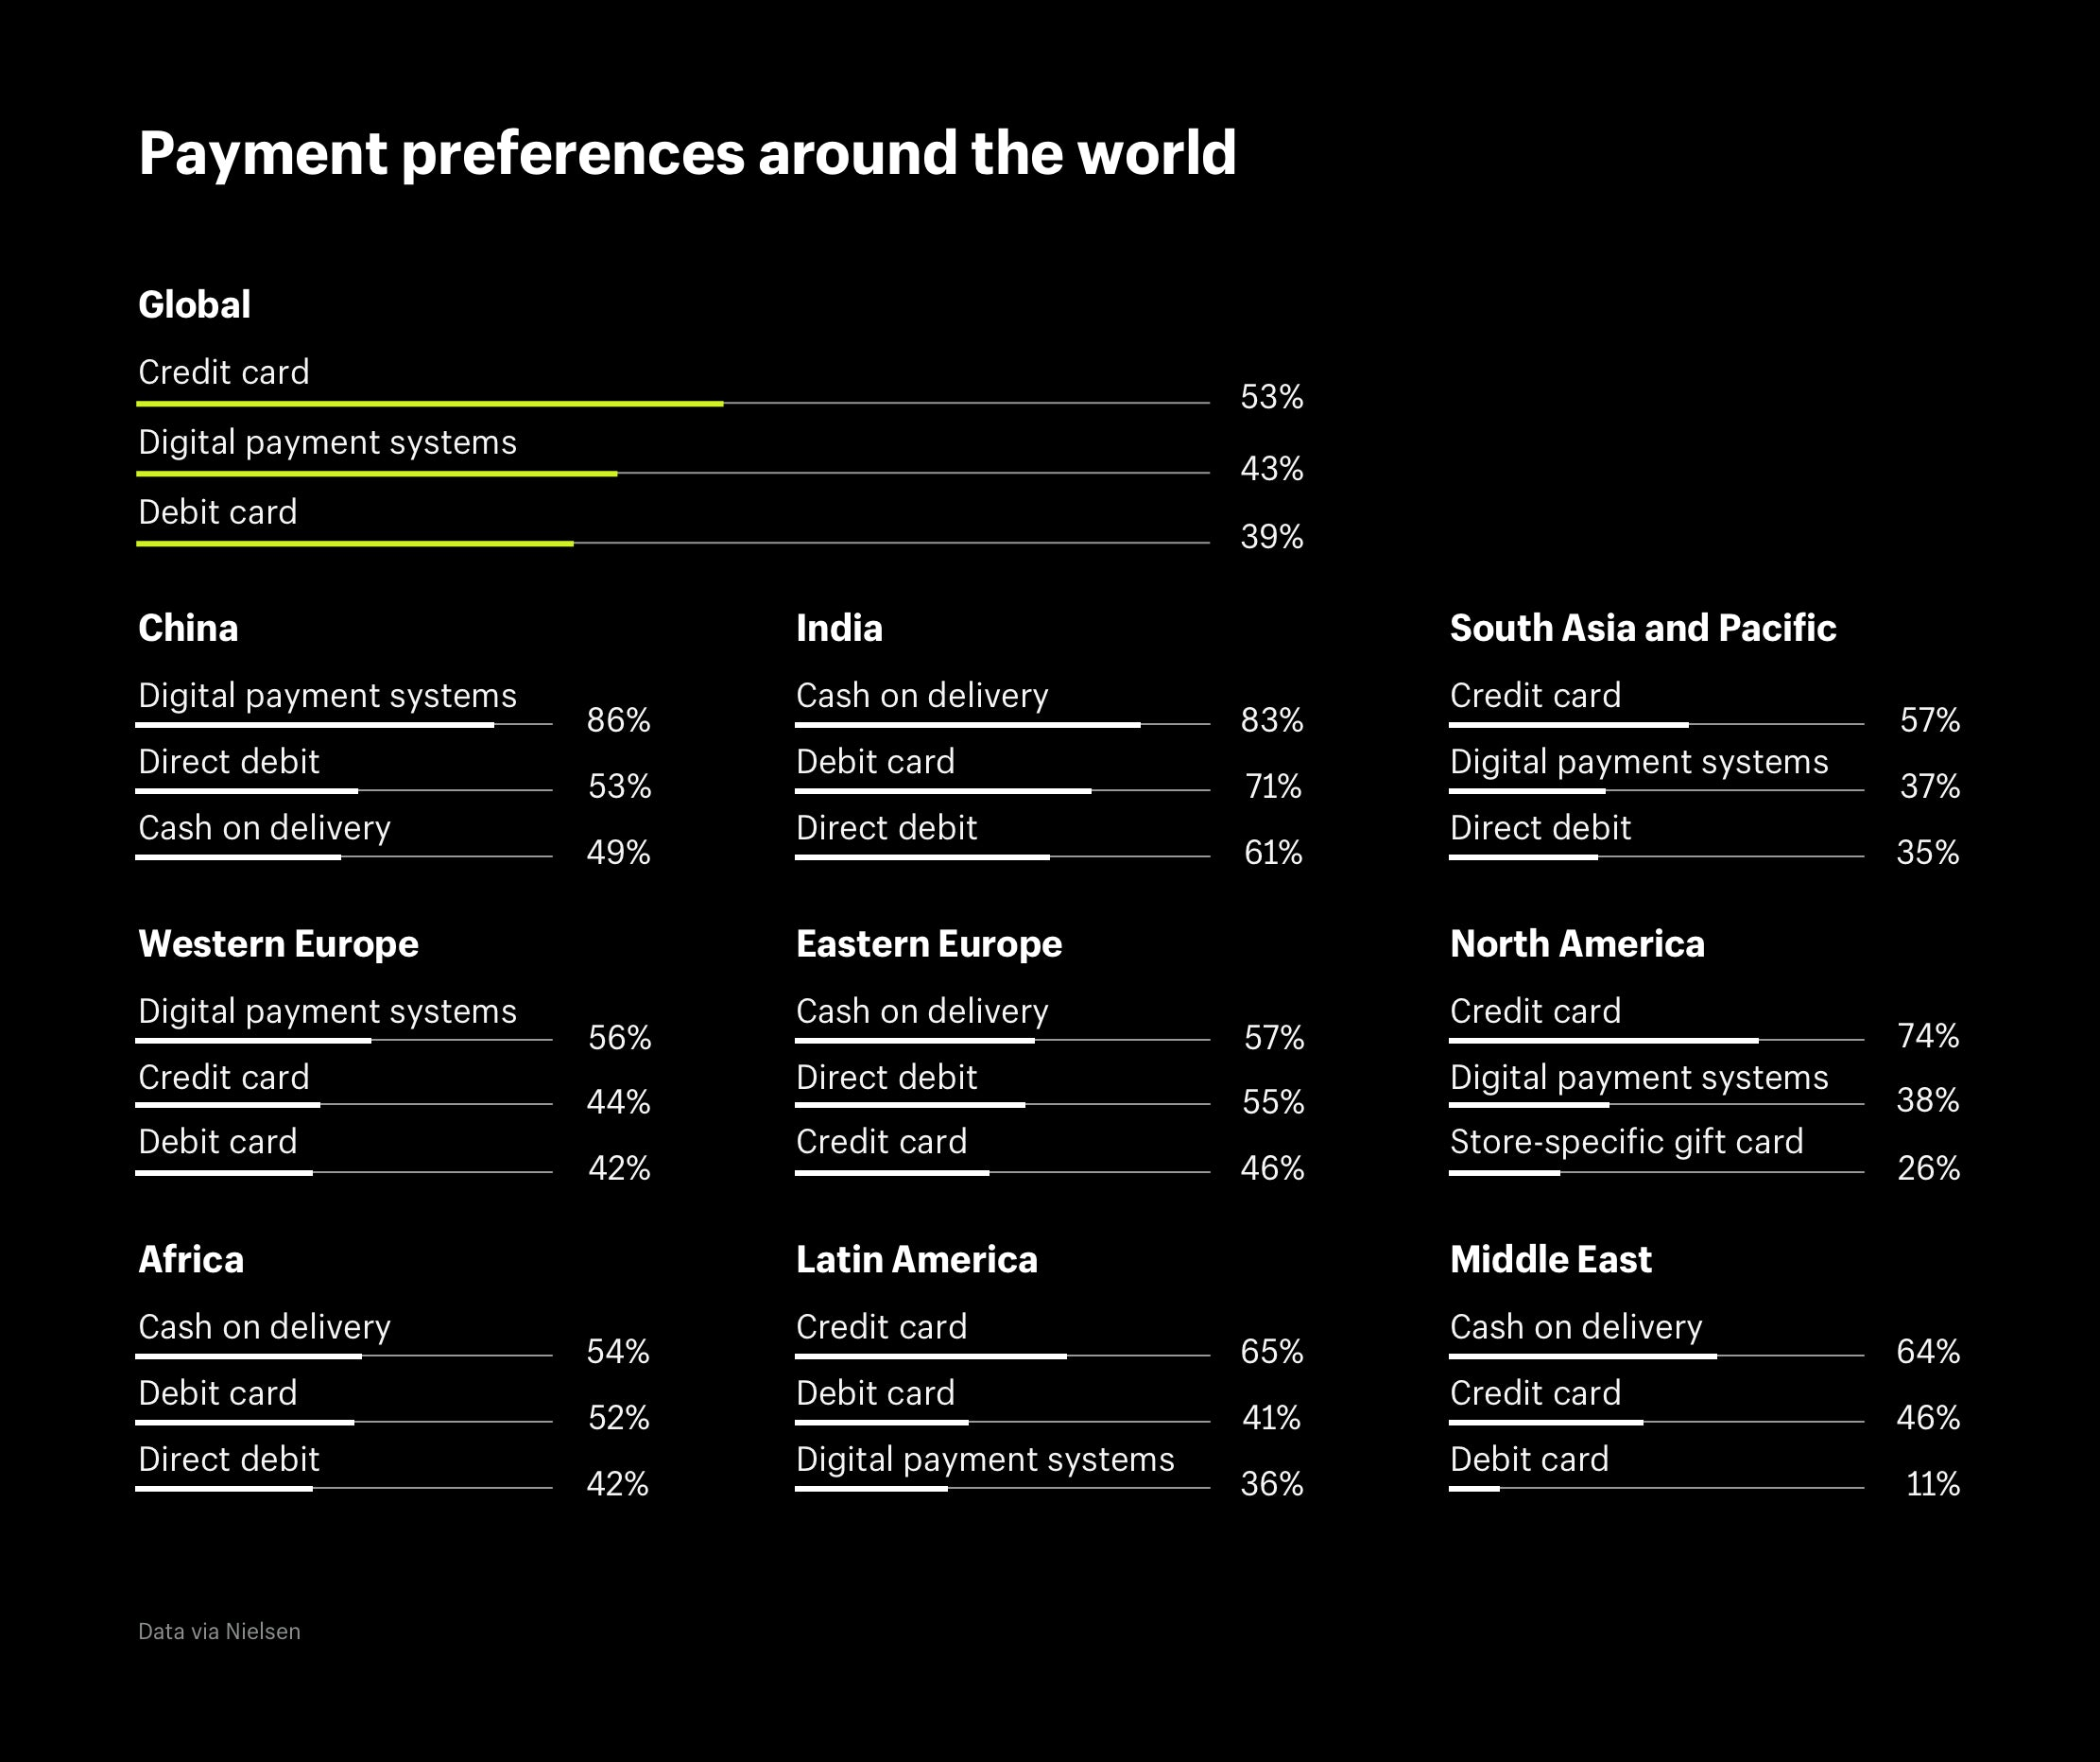 Payment preferences around the world